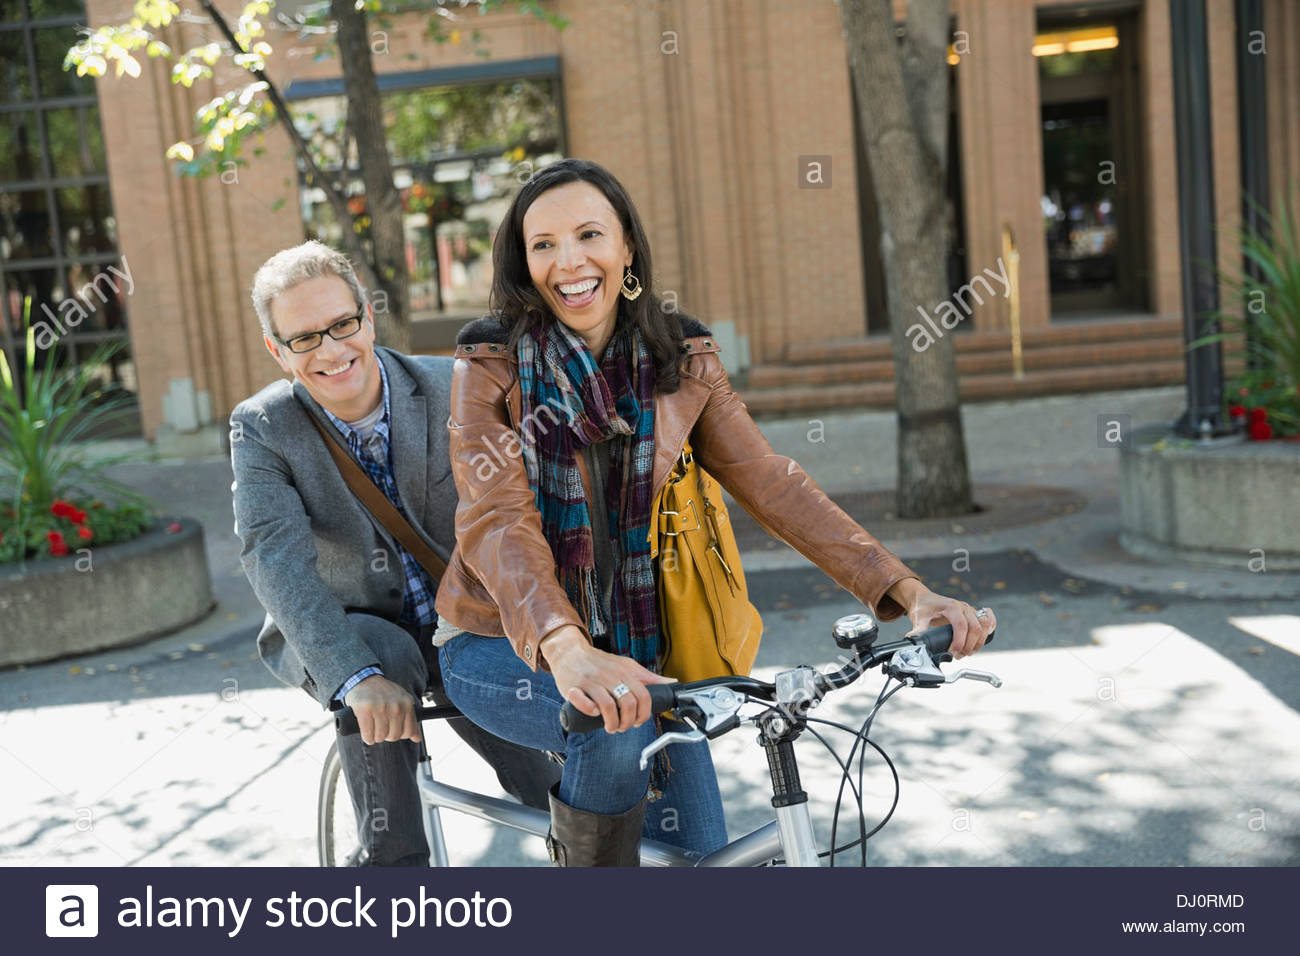 Smiling couple riding tandem bicycle - Stock Image